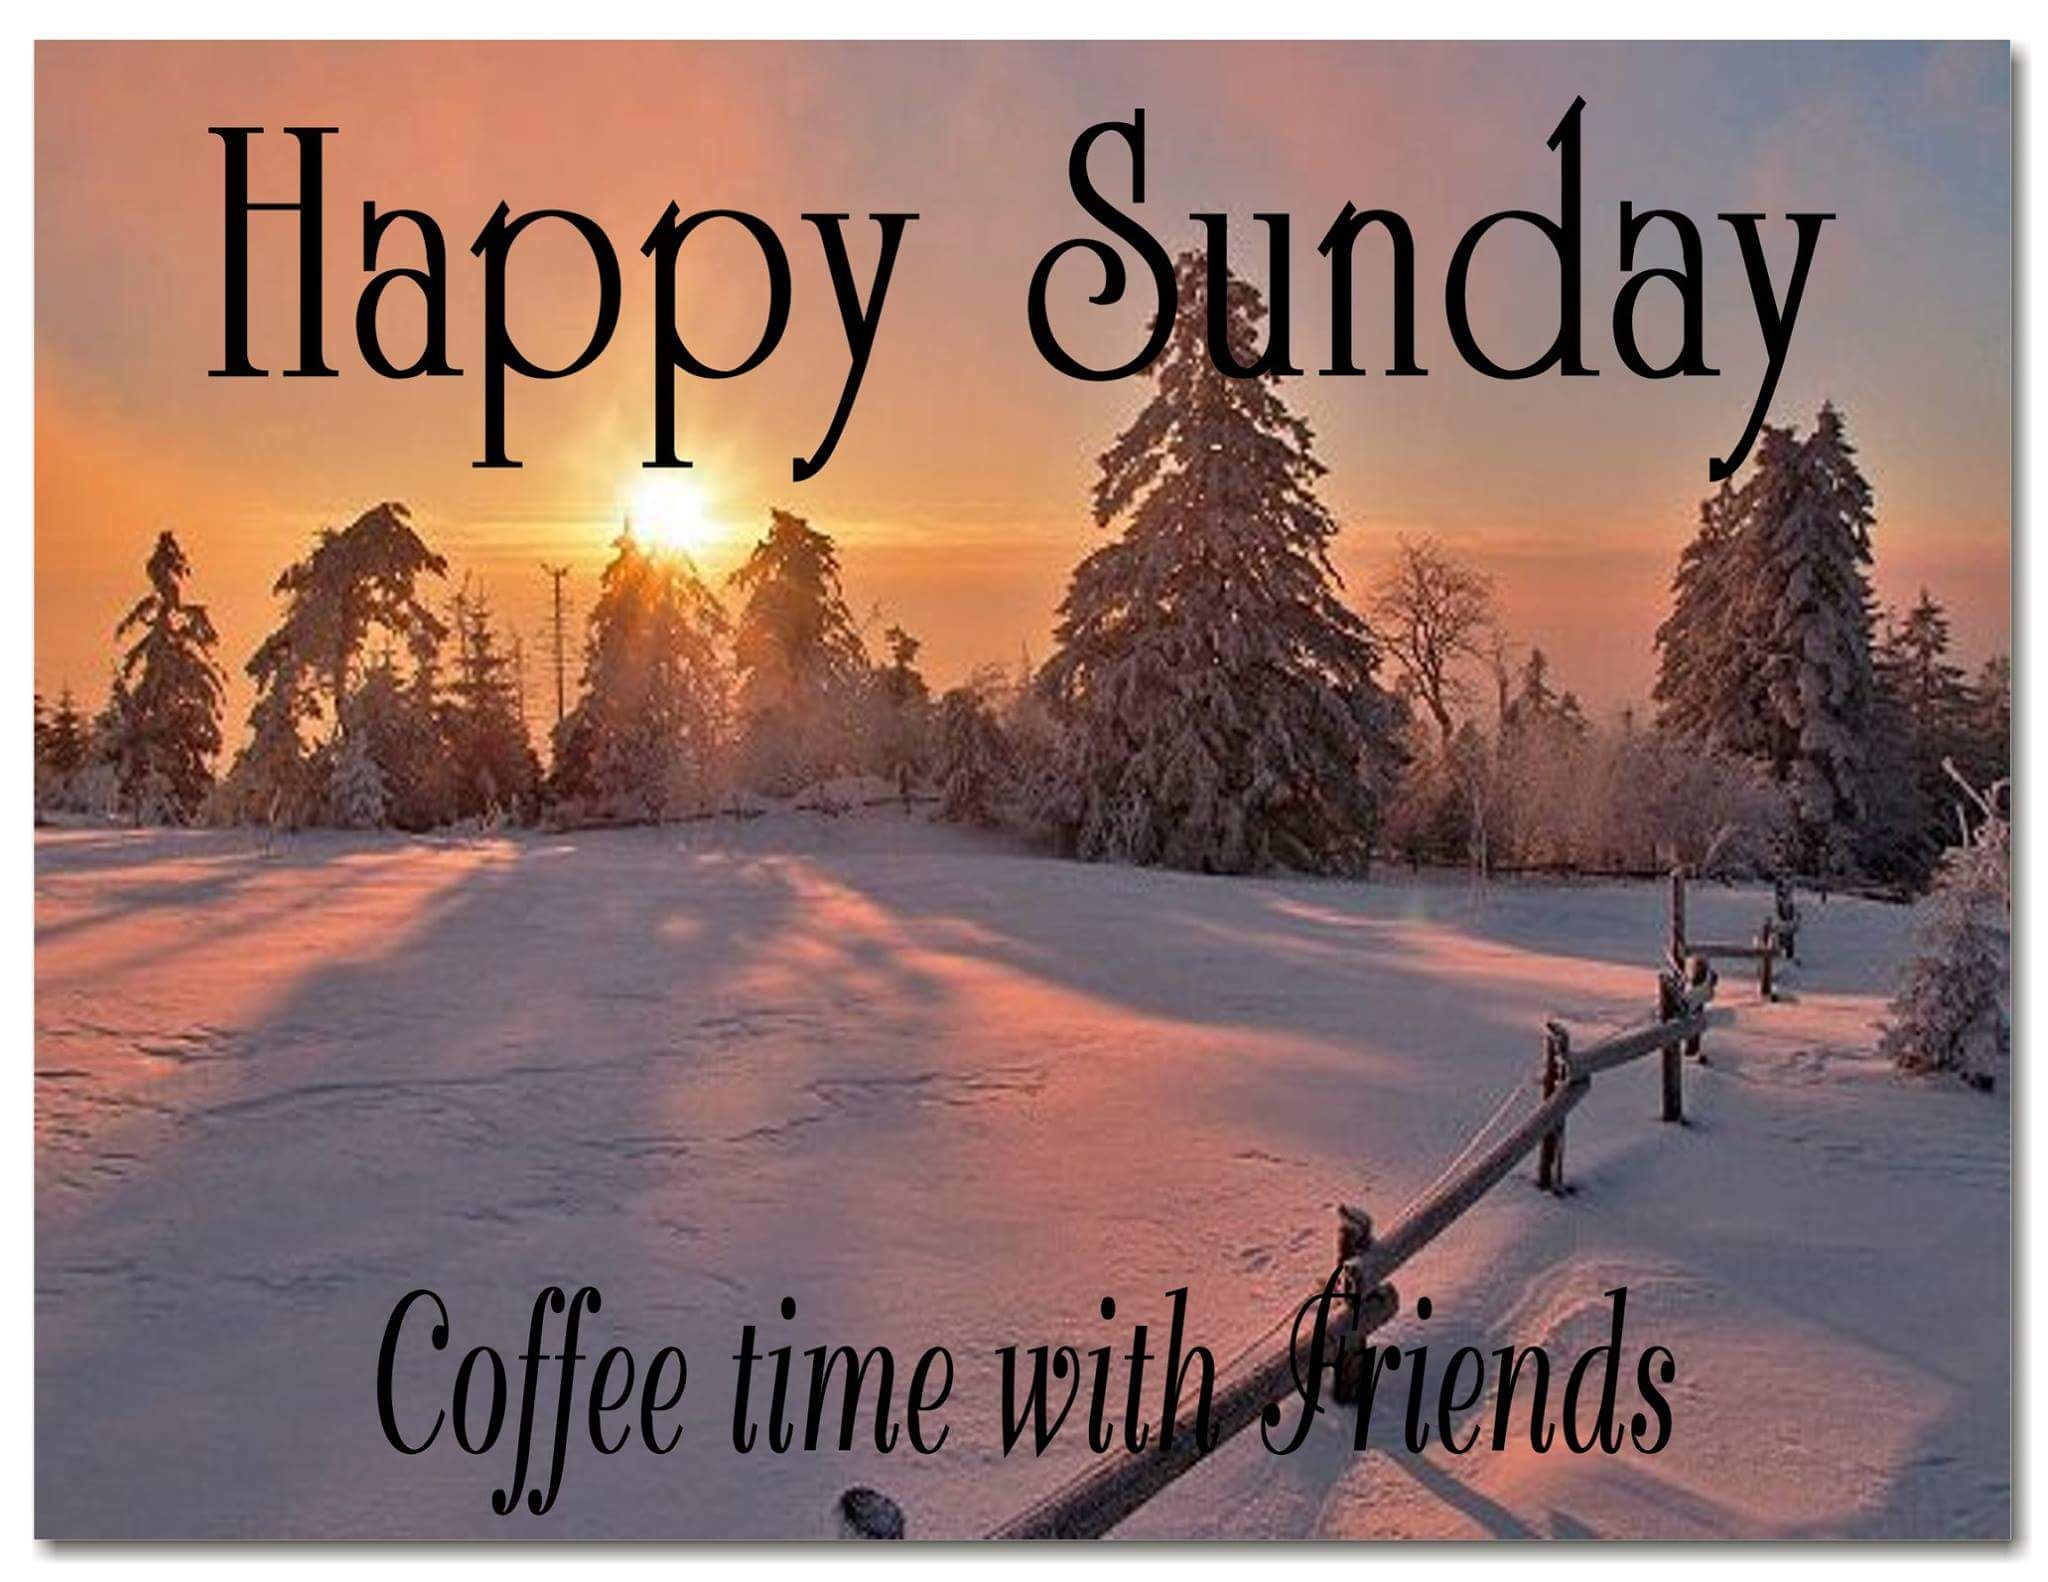 Image result for happy winter sunday image